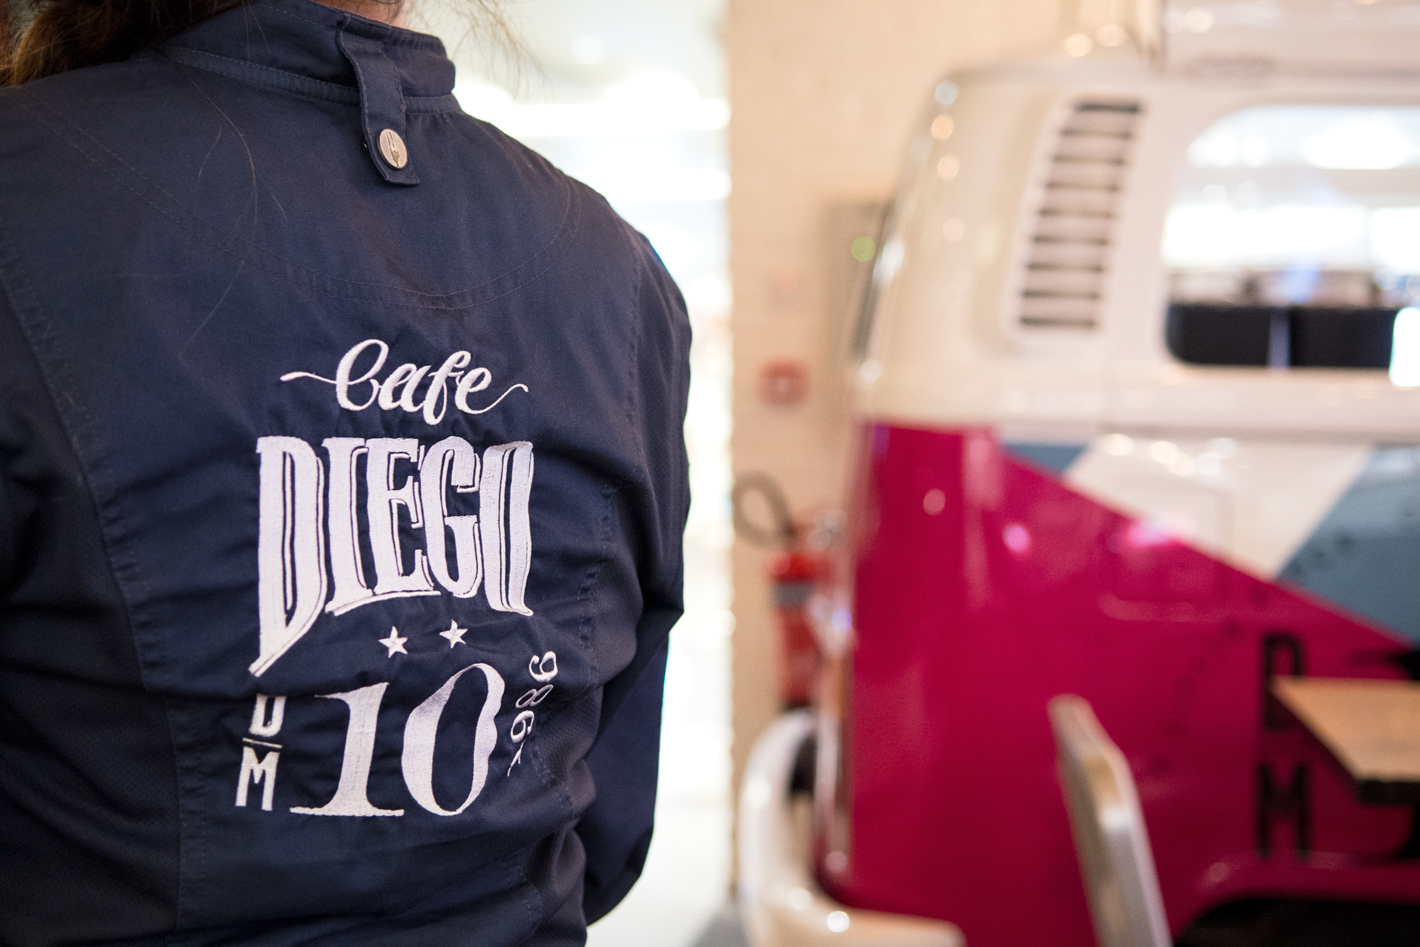 Cafe Diego_Backbone Branding (17)